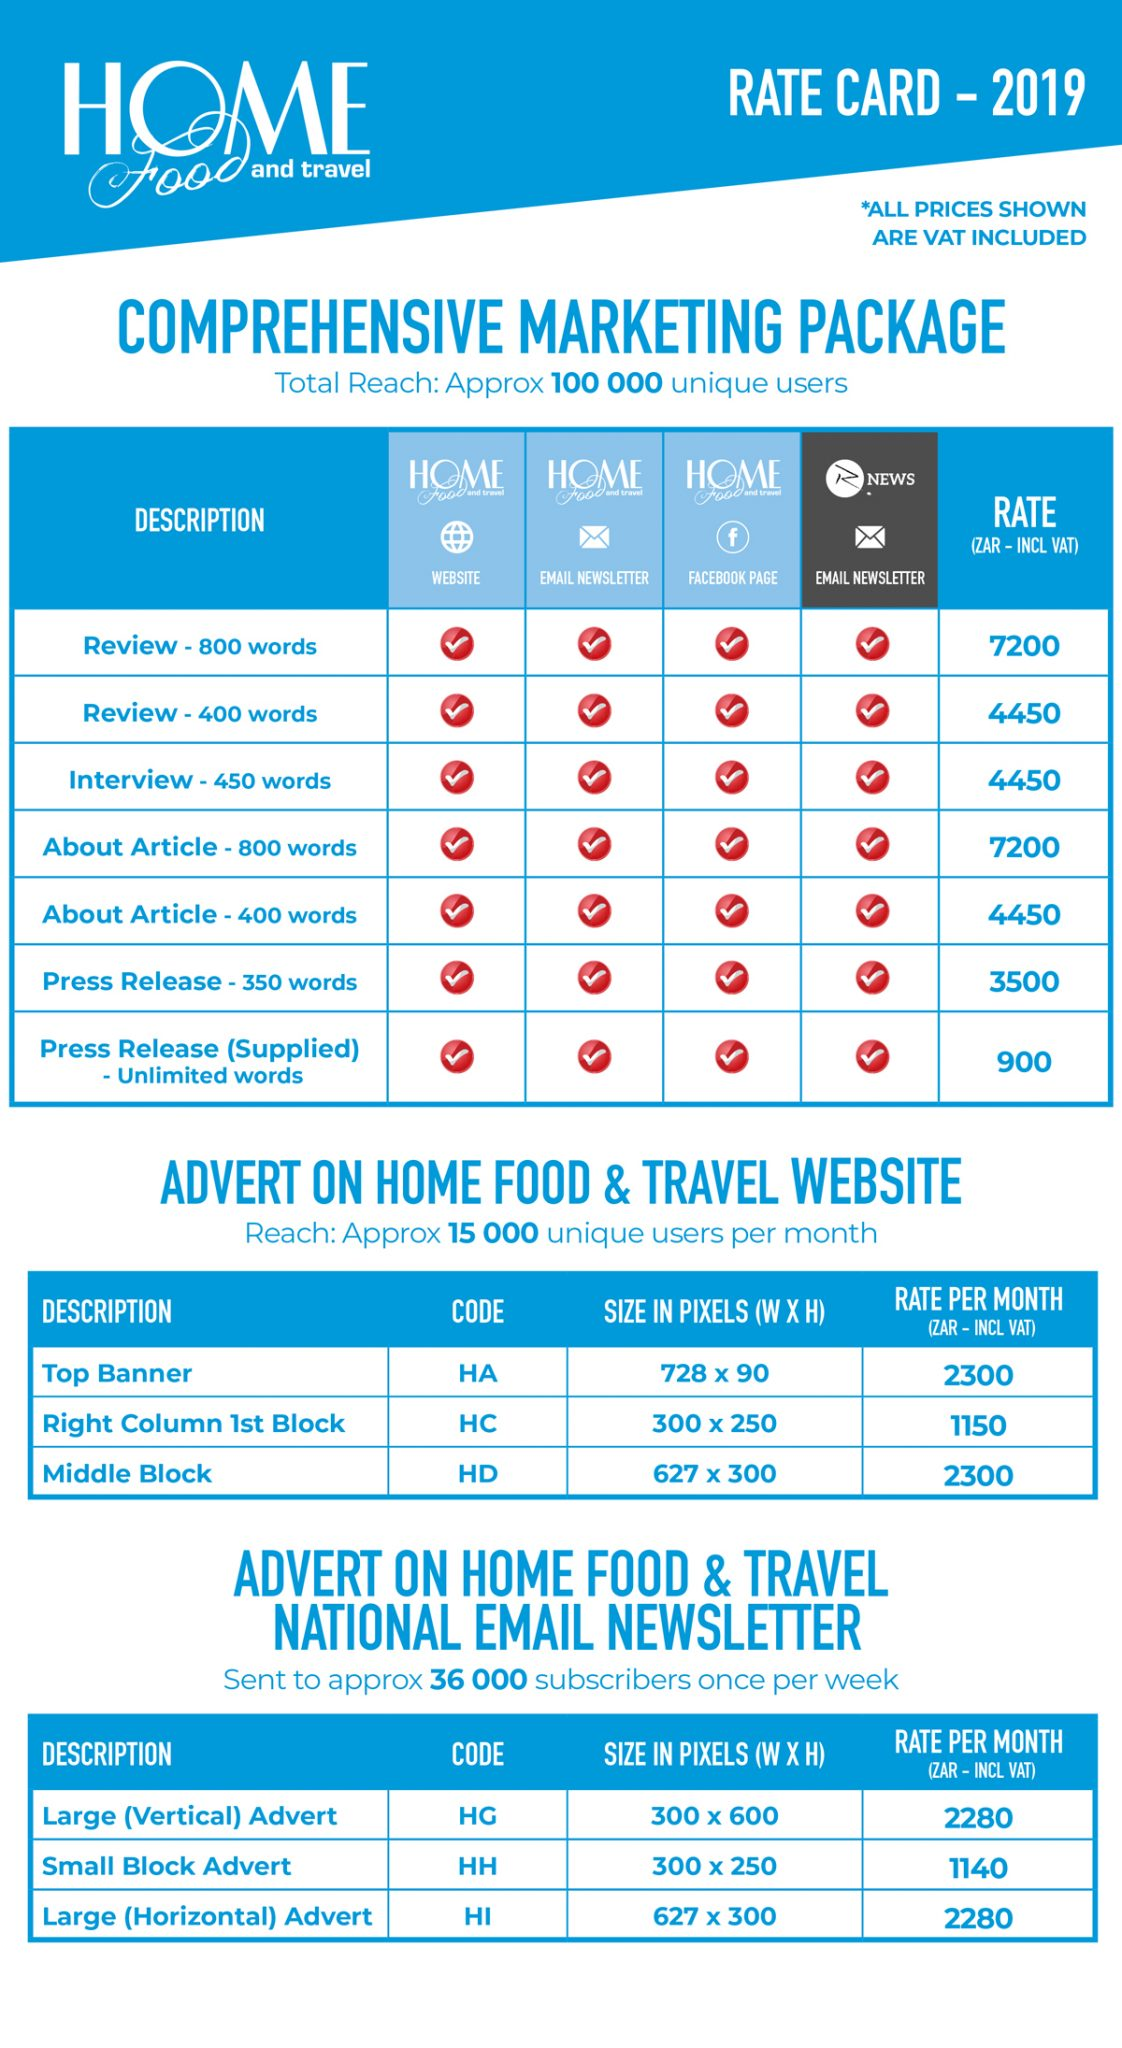 Home Food and Travel Rate Card